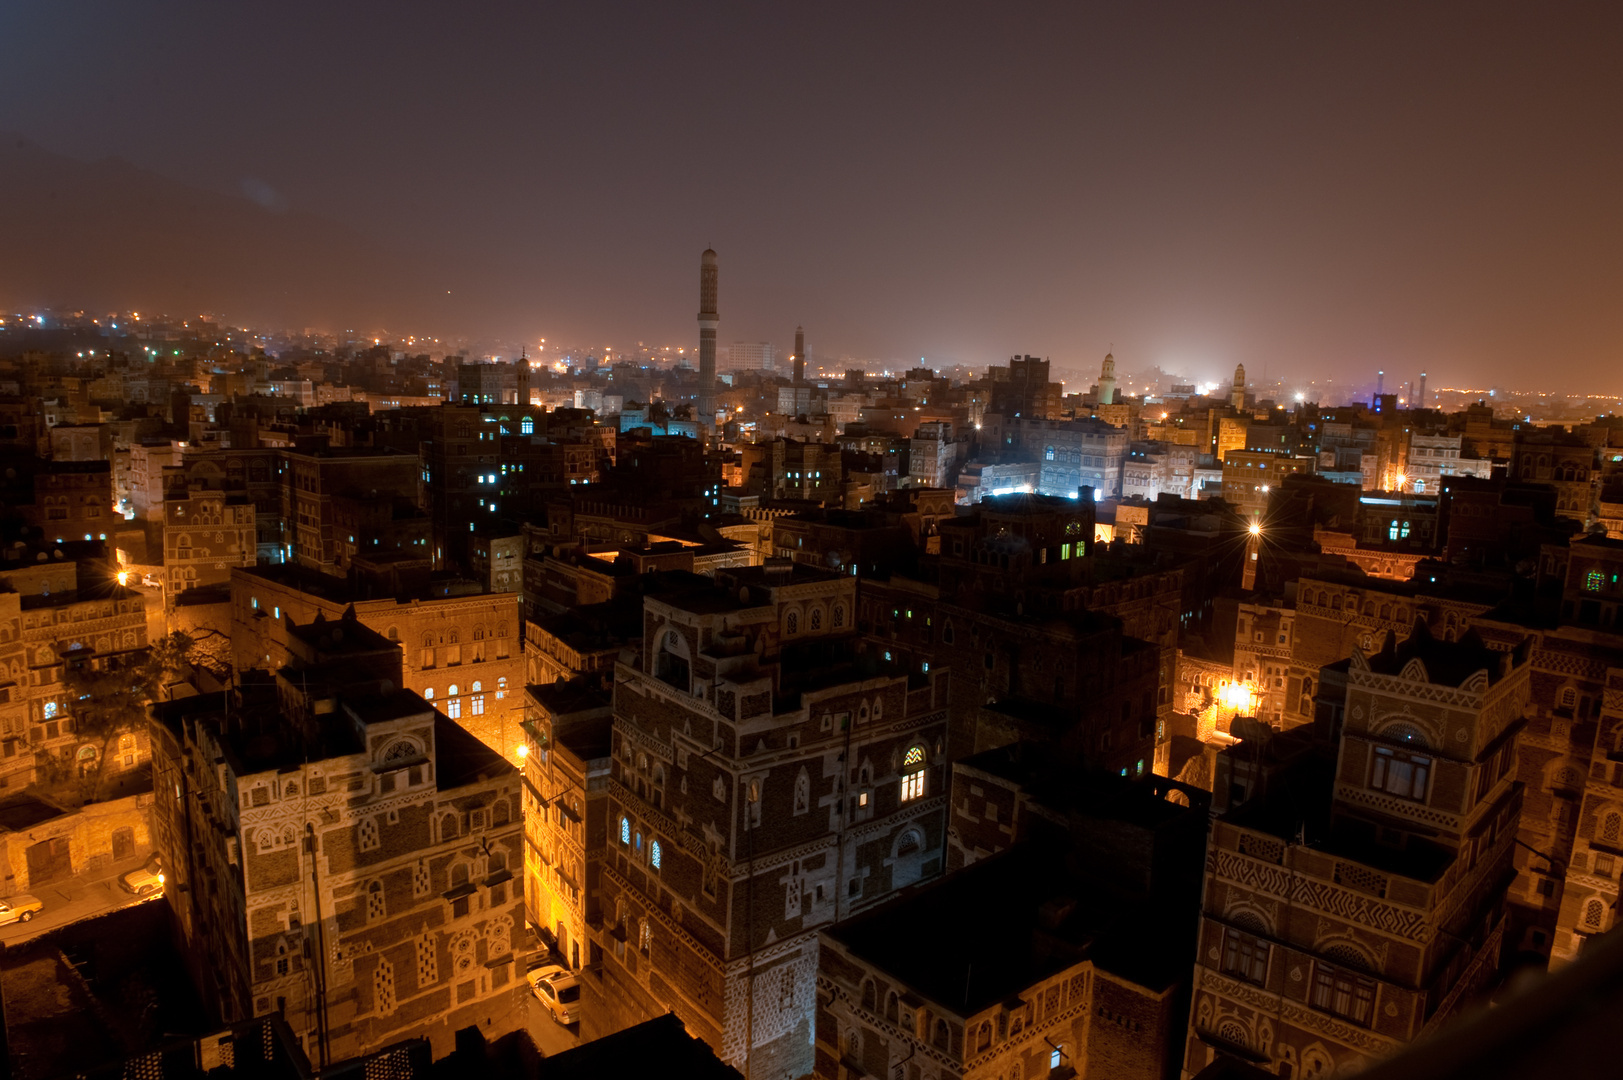 Sana'a at night